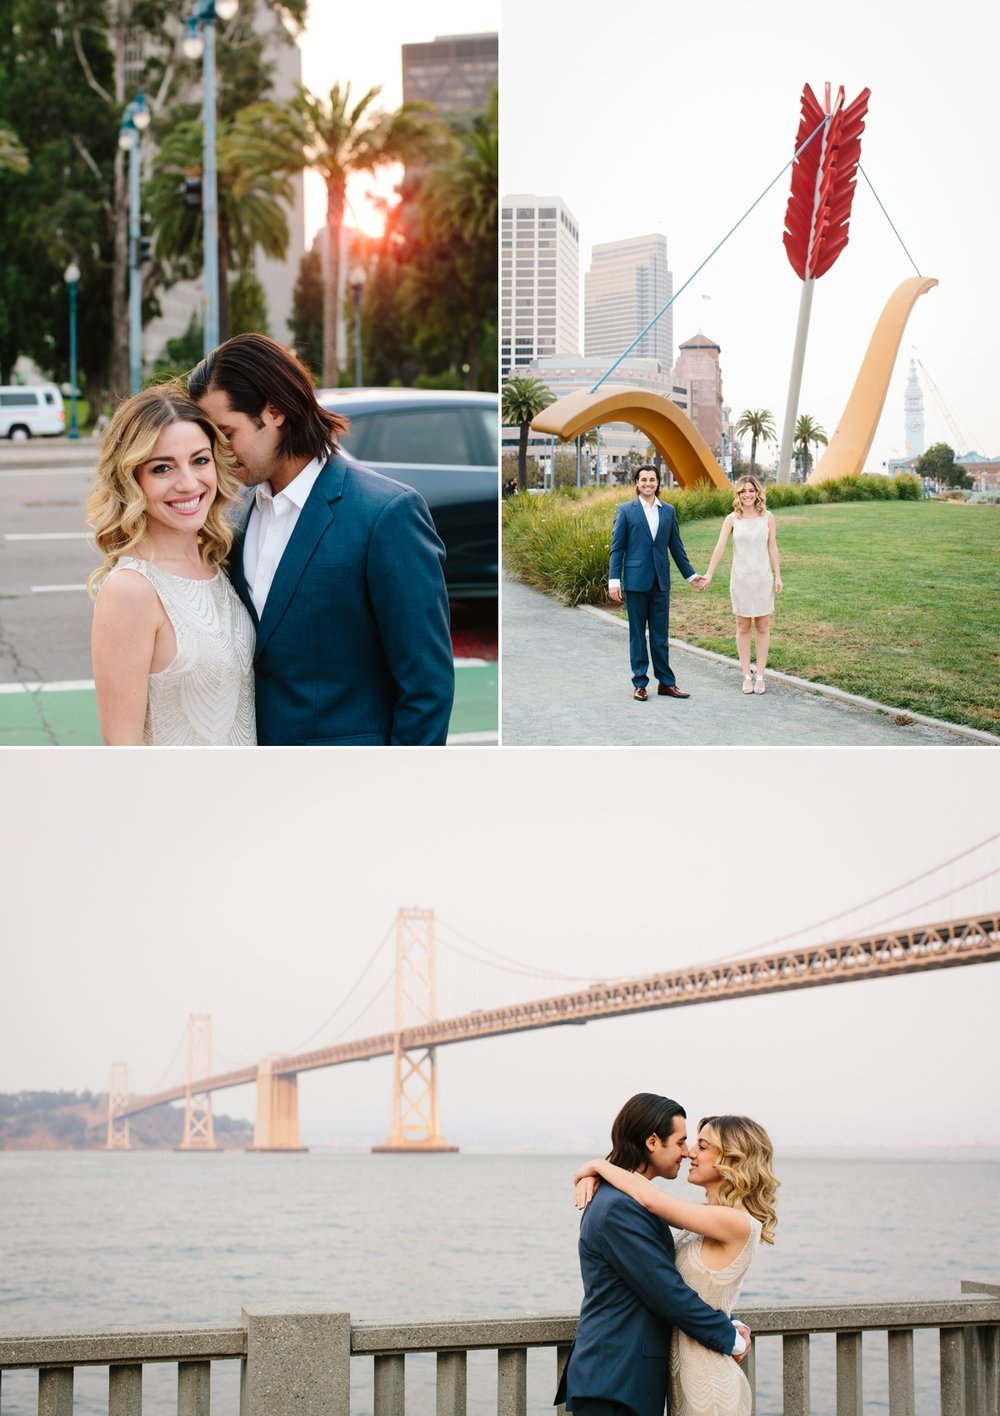 A walk along the Embarcadero at the Ferry building, and the Bay Bridge is so beautiful at sunset.